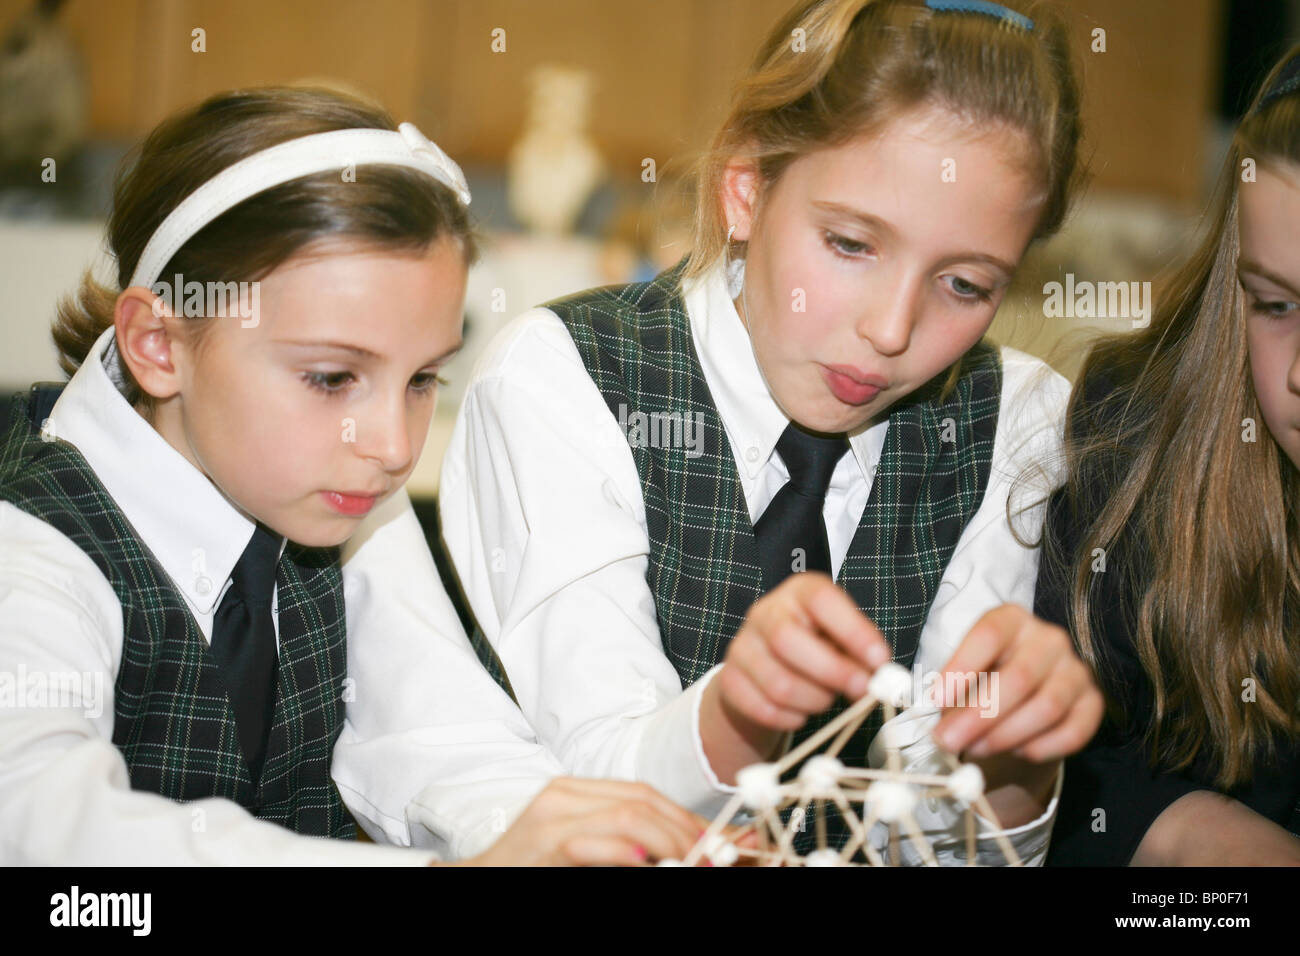 Canada, Québec, Montreal, private school, physics class - Stock Image